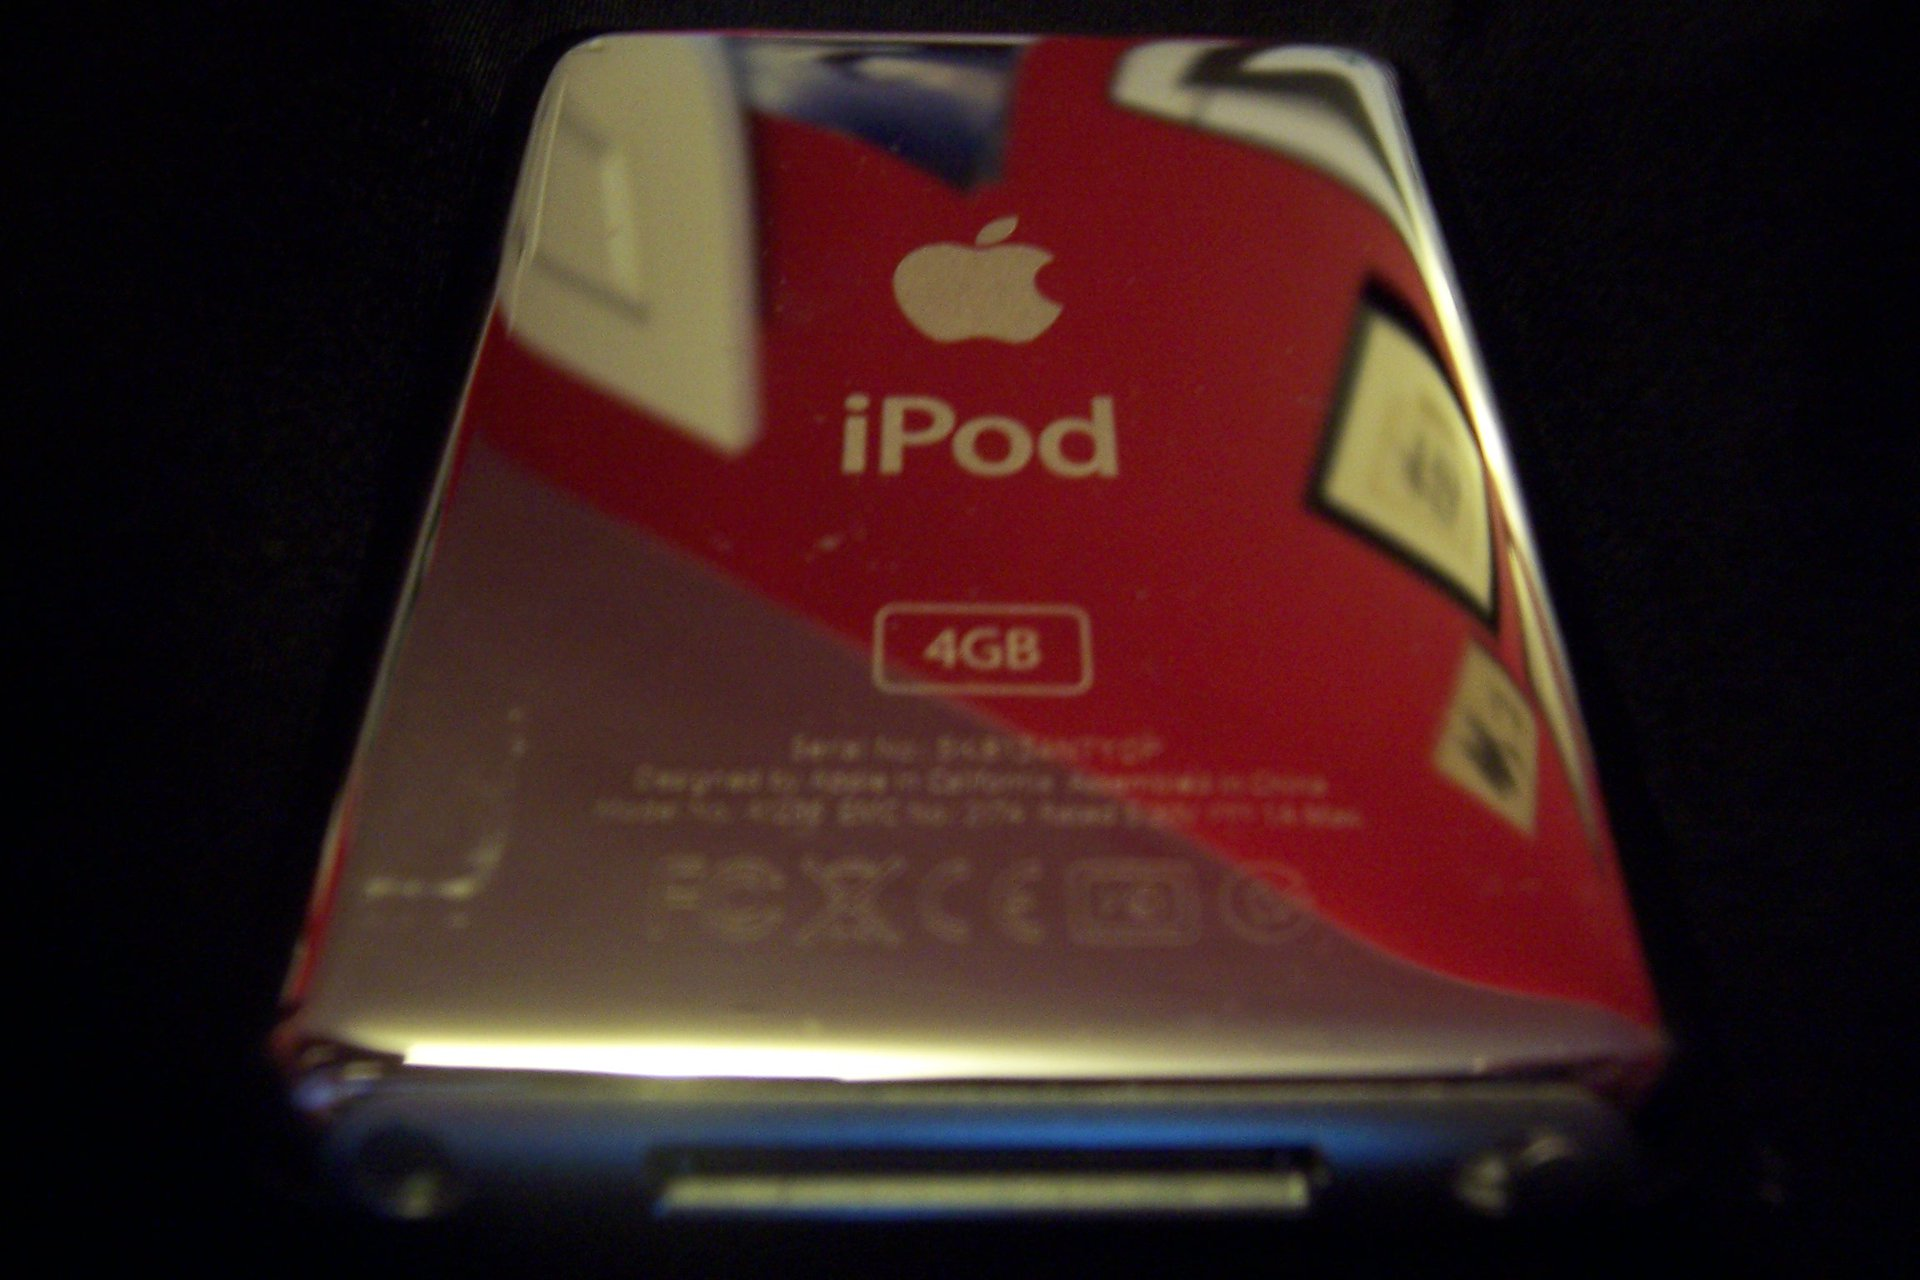 Ipod picture